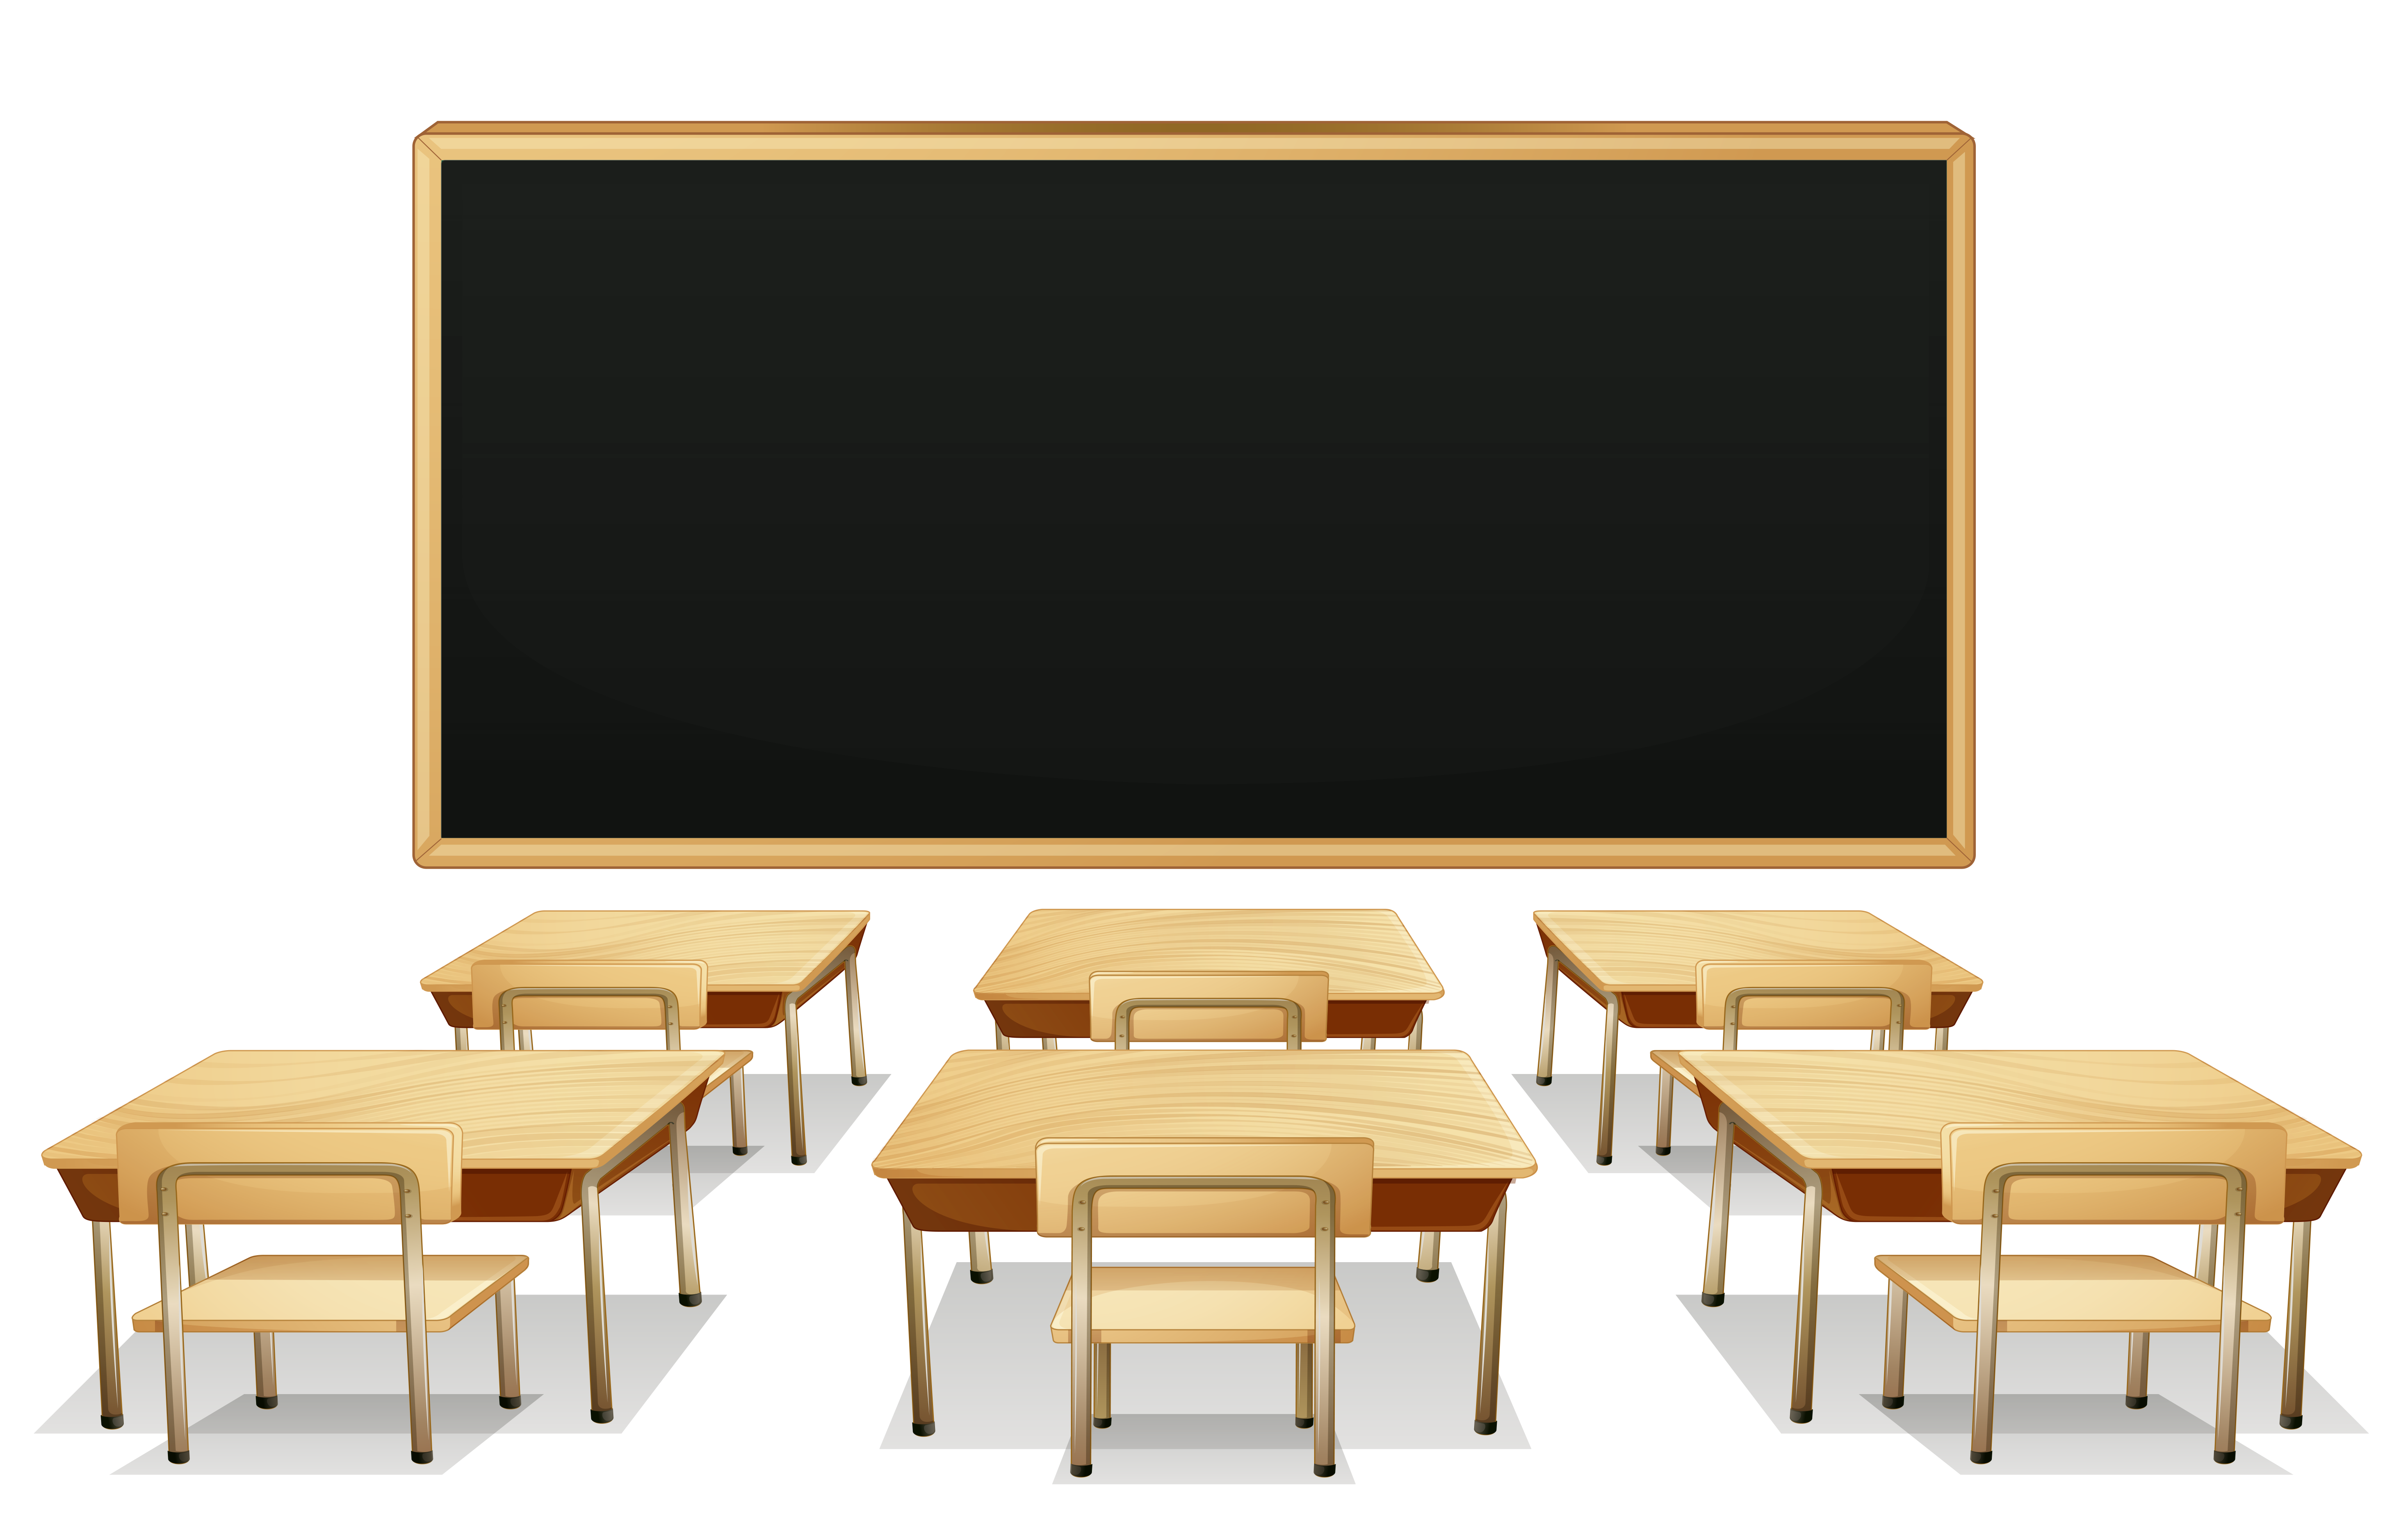 School Classroom with Blackboard and Desks PNG Clipart Picture.